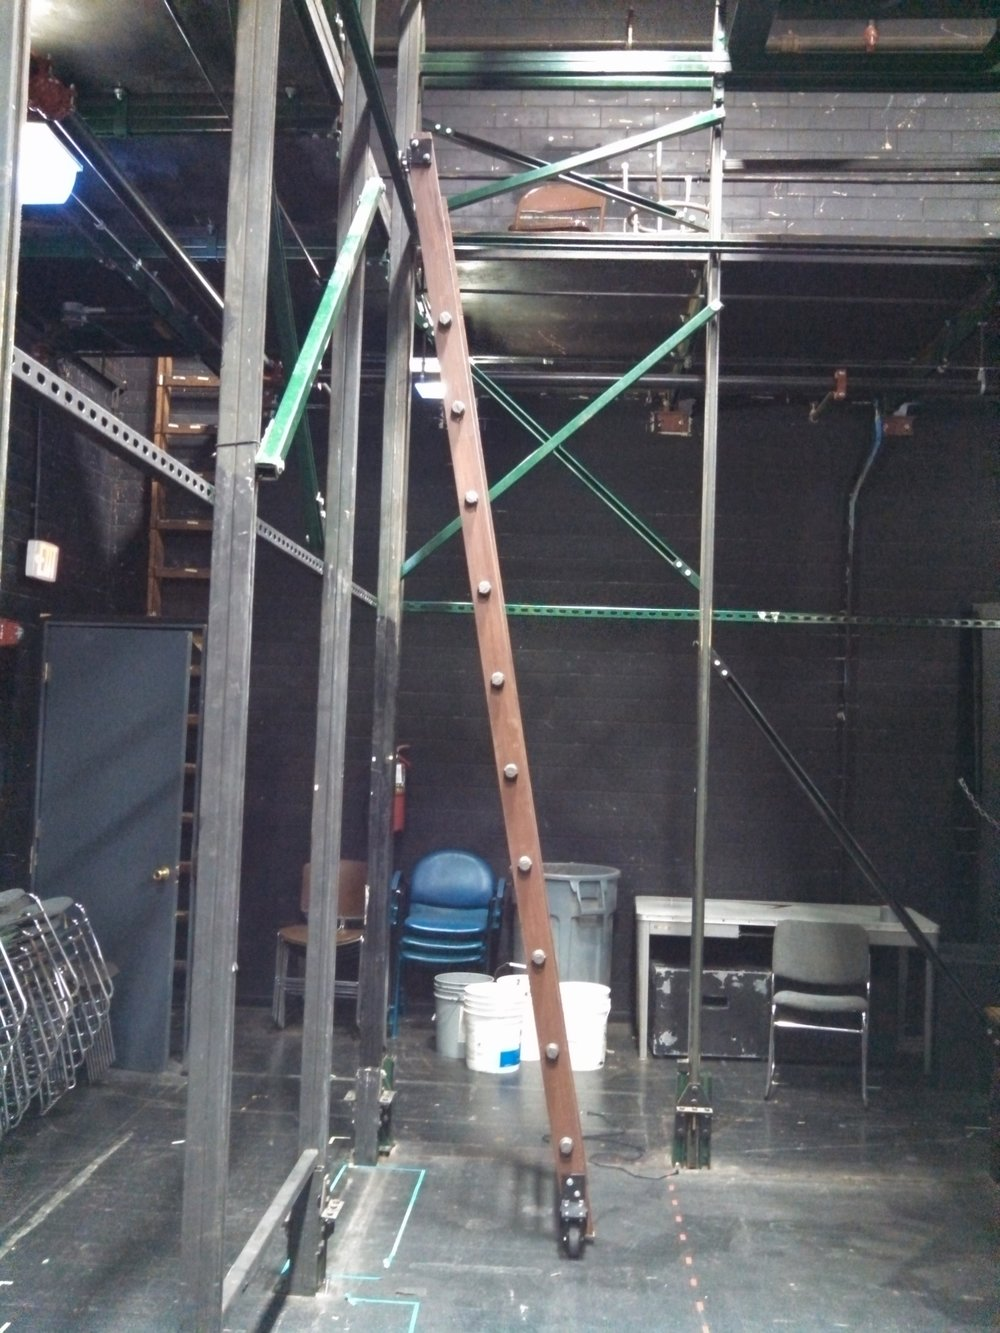 Completed ladder in position.